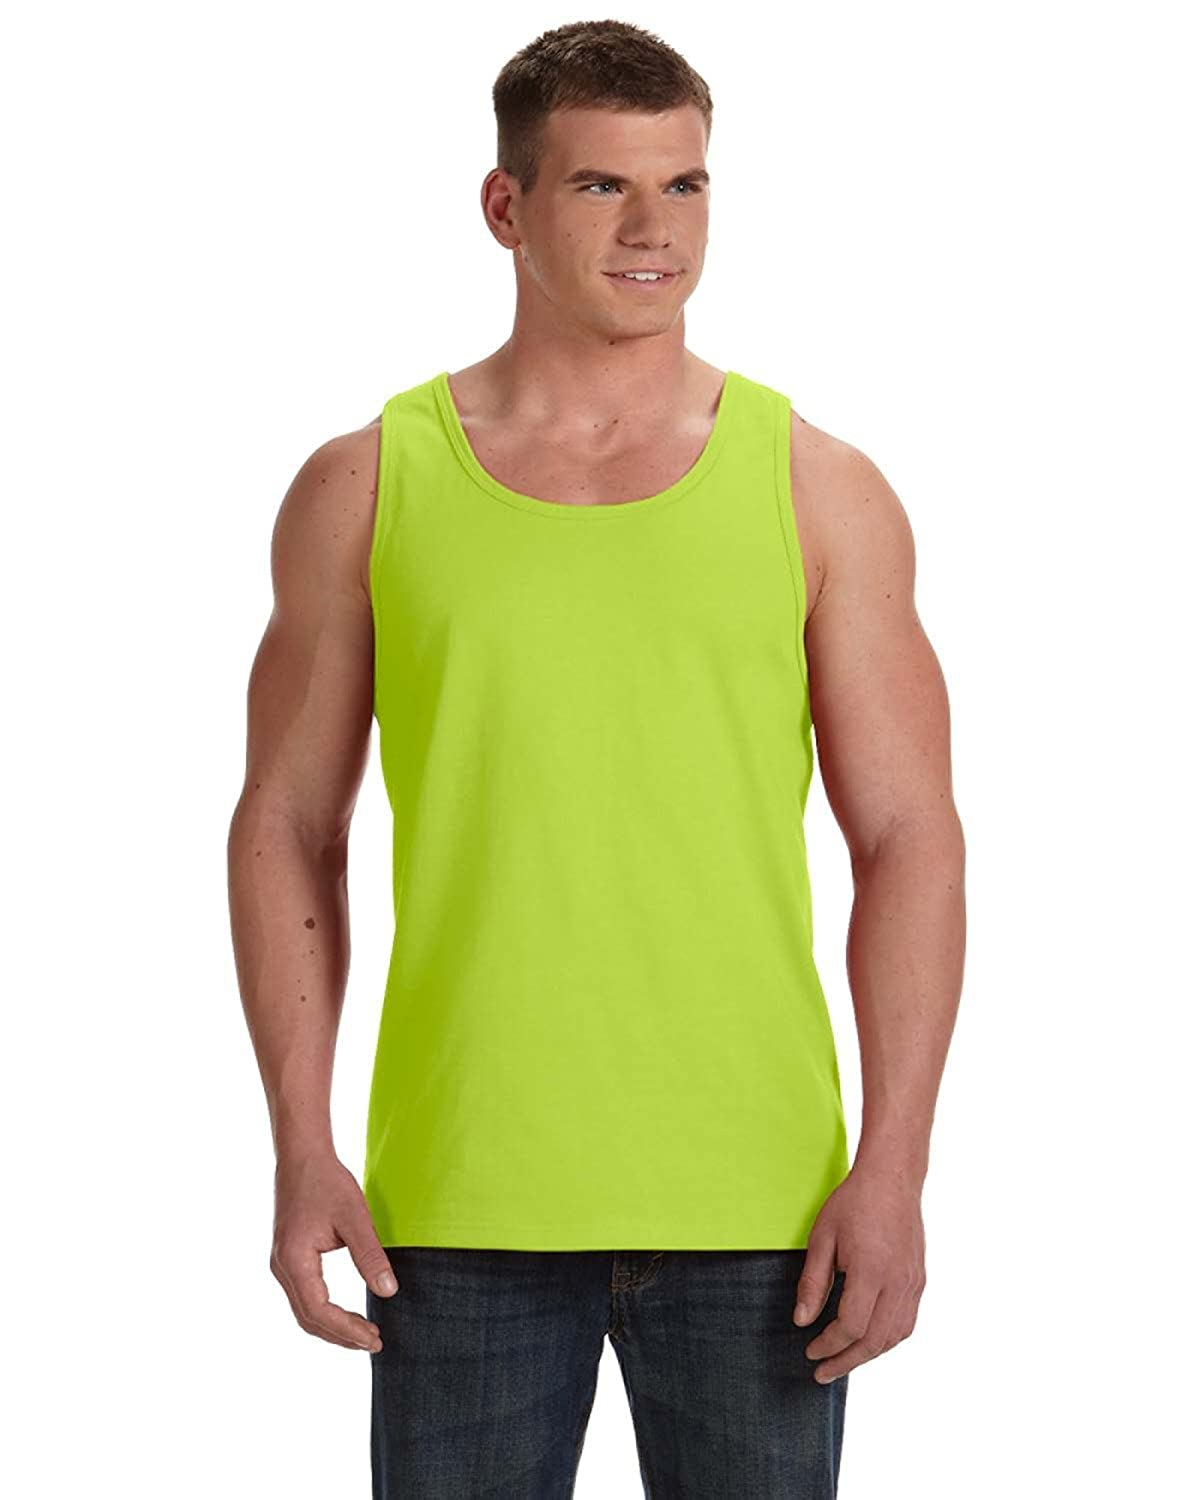 L - Safety Green Instant Savings of 5/% /& More Fruit of the Loom Product of Brand Adult 5 oz HD Cotton Tank Top